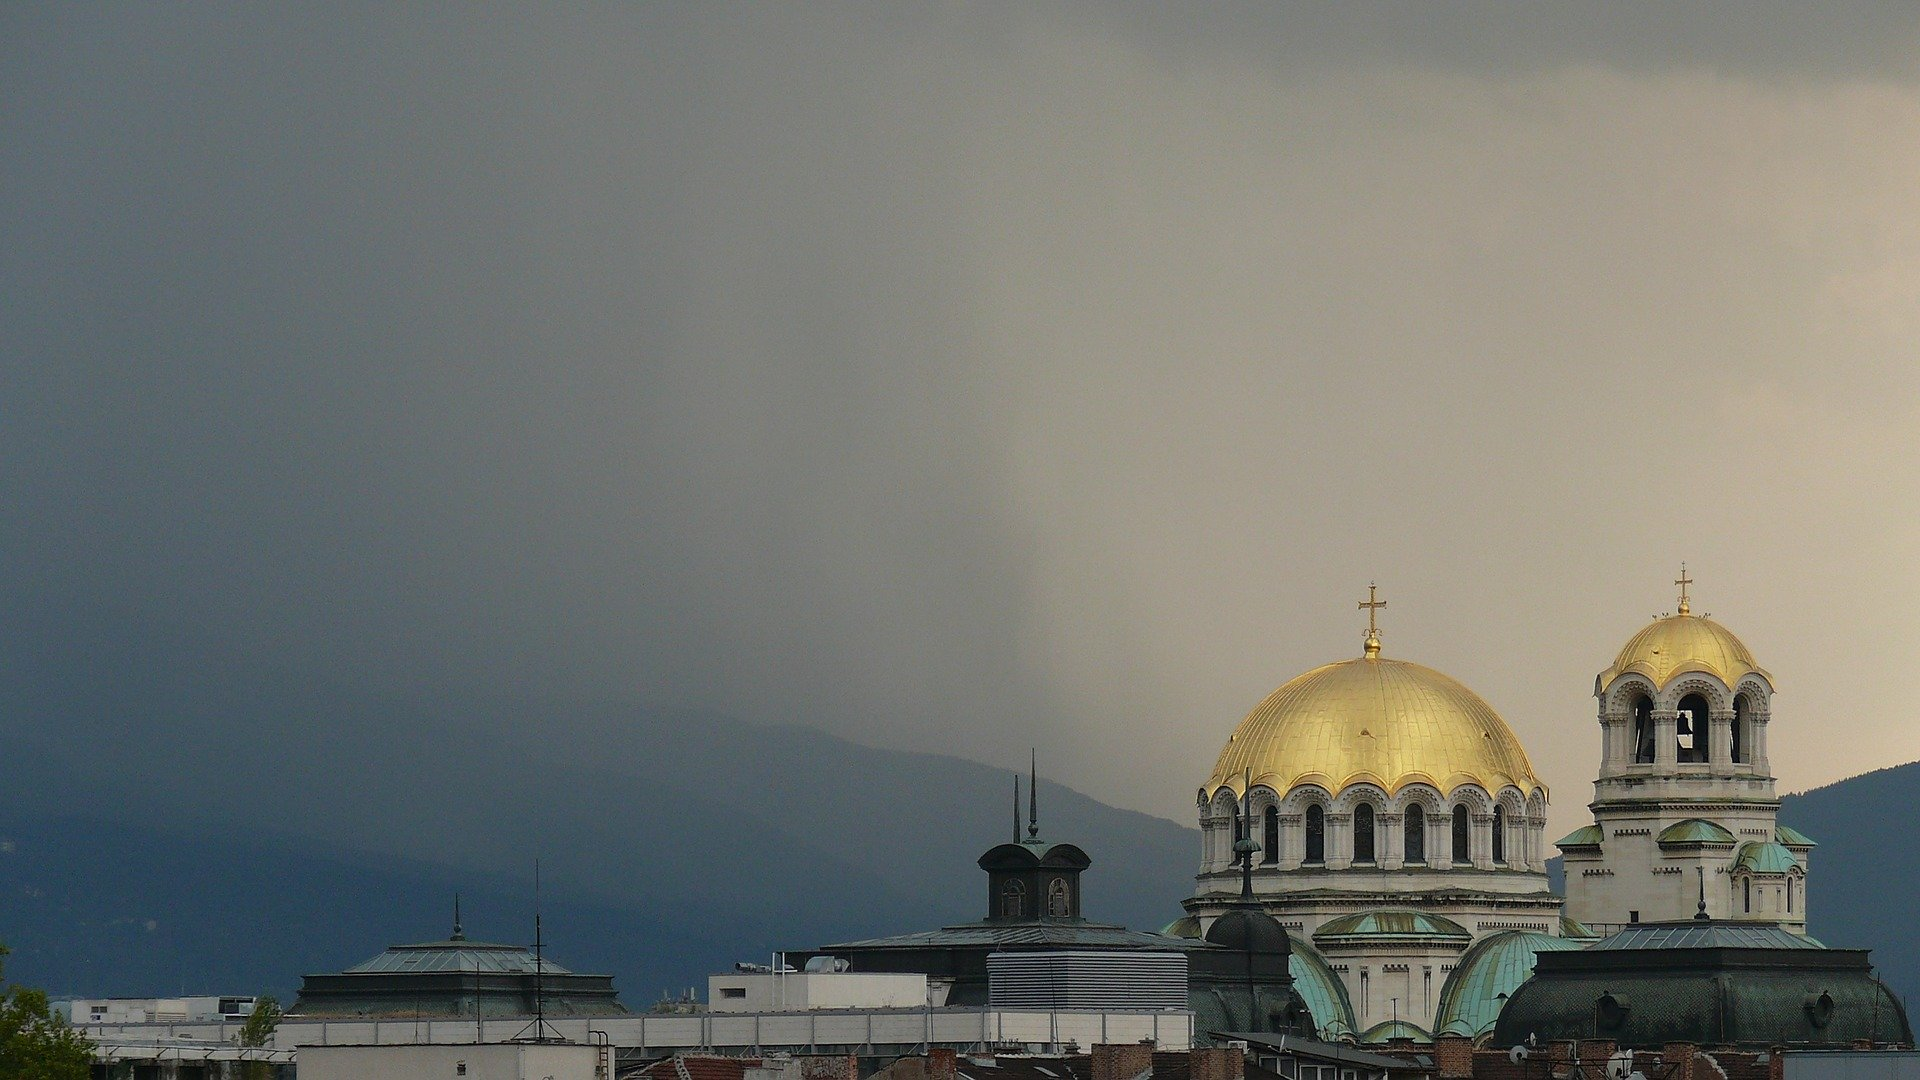 Image of Sofia by Wengen from Pixabay